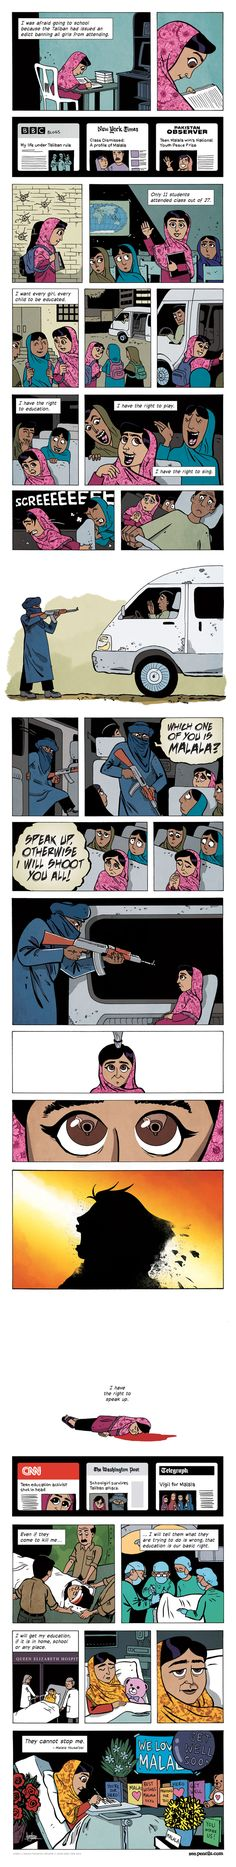 Malala. A necessary person. The world needs more such people. Every block of every city.